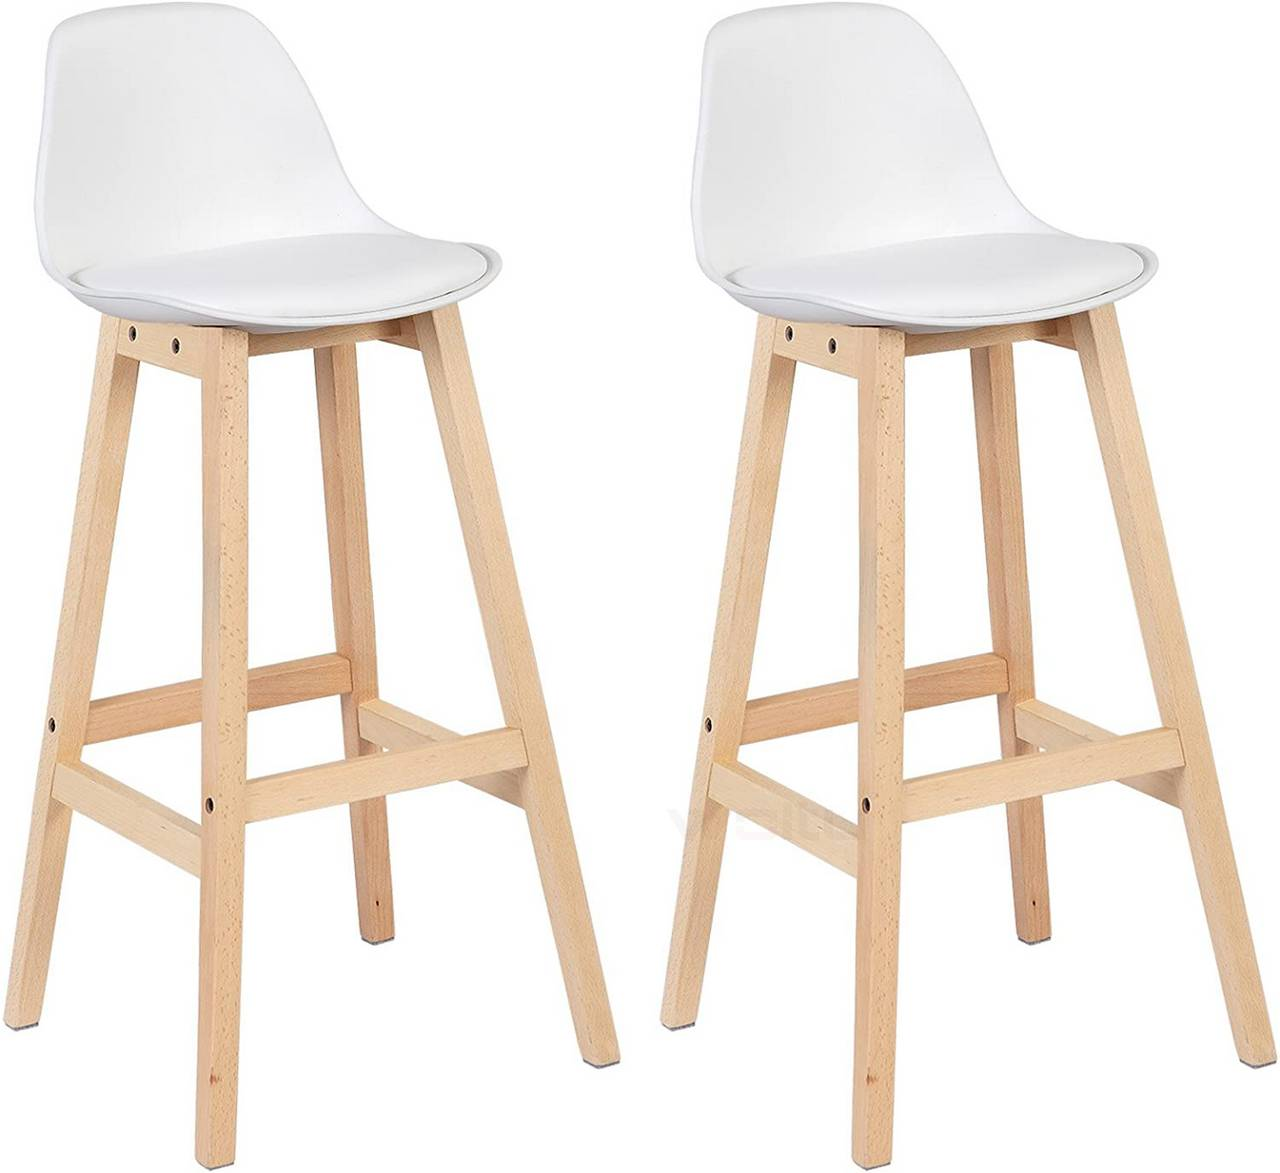 Breakfast Kitchen Counter Chairs Bar Stools Set Of 2 White Woltu Eu